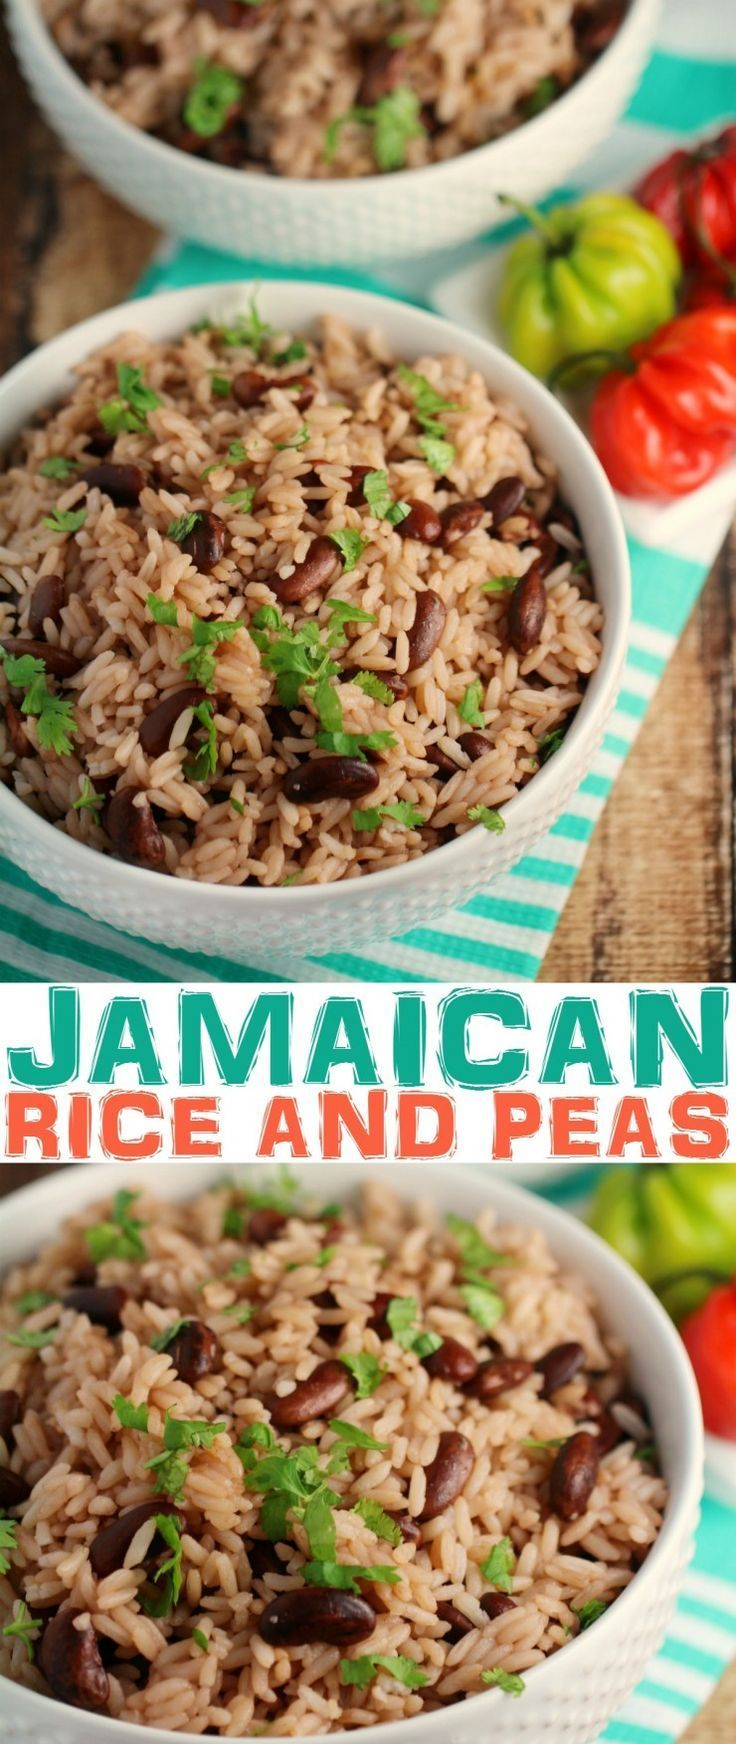 this jamaican rice and peas recipe is an authentic recipe